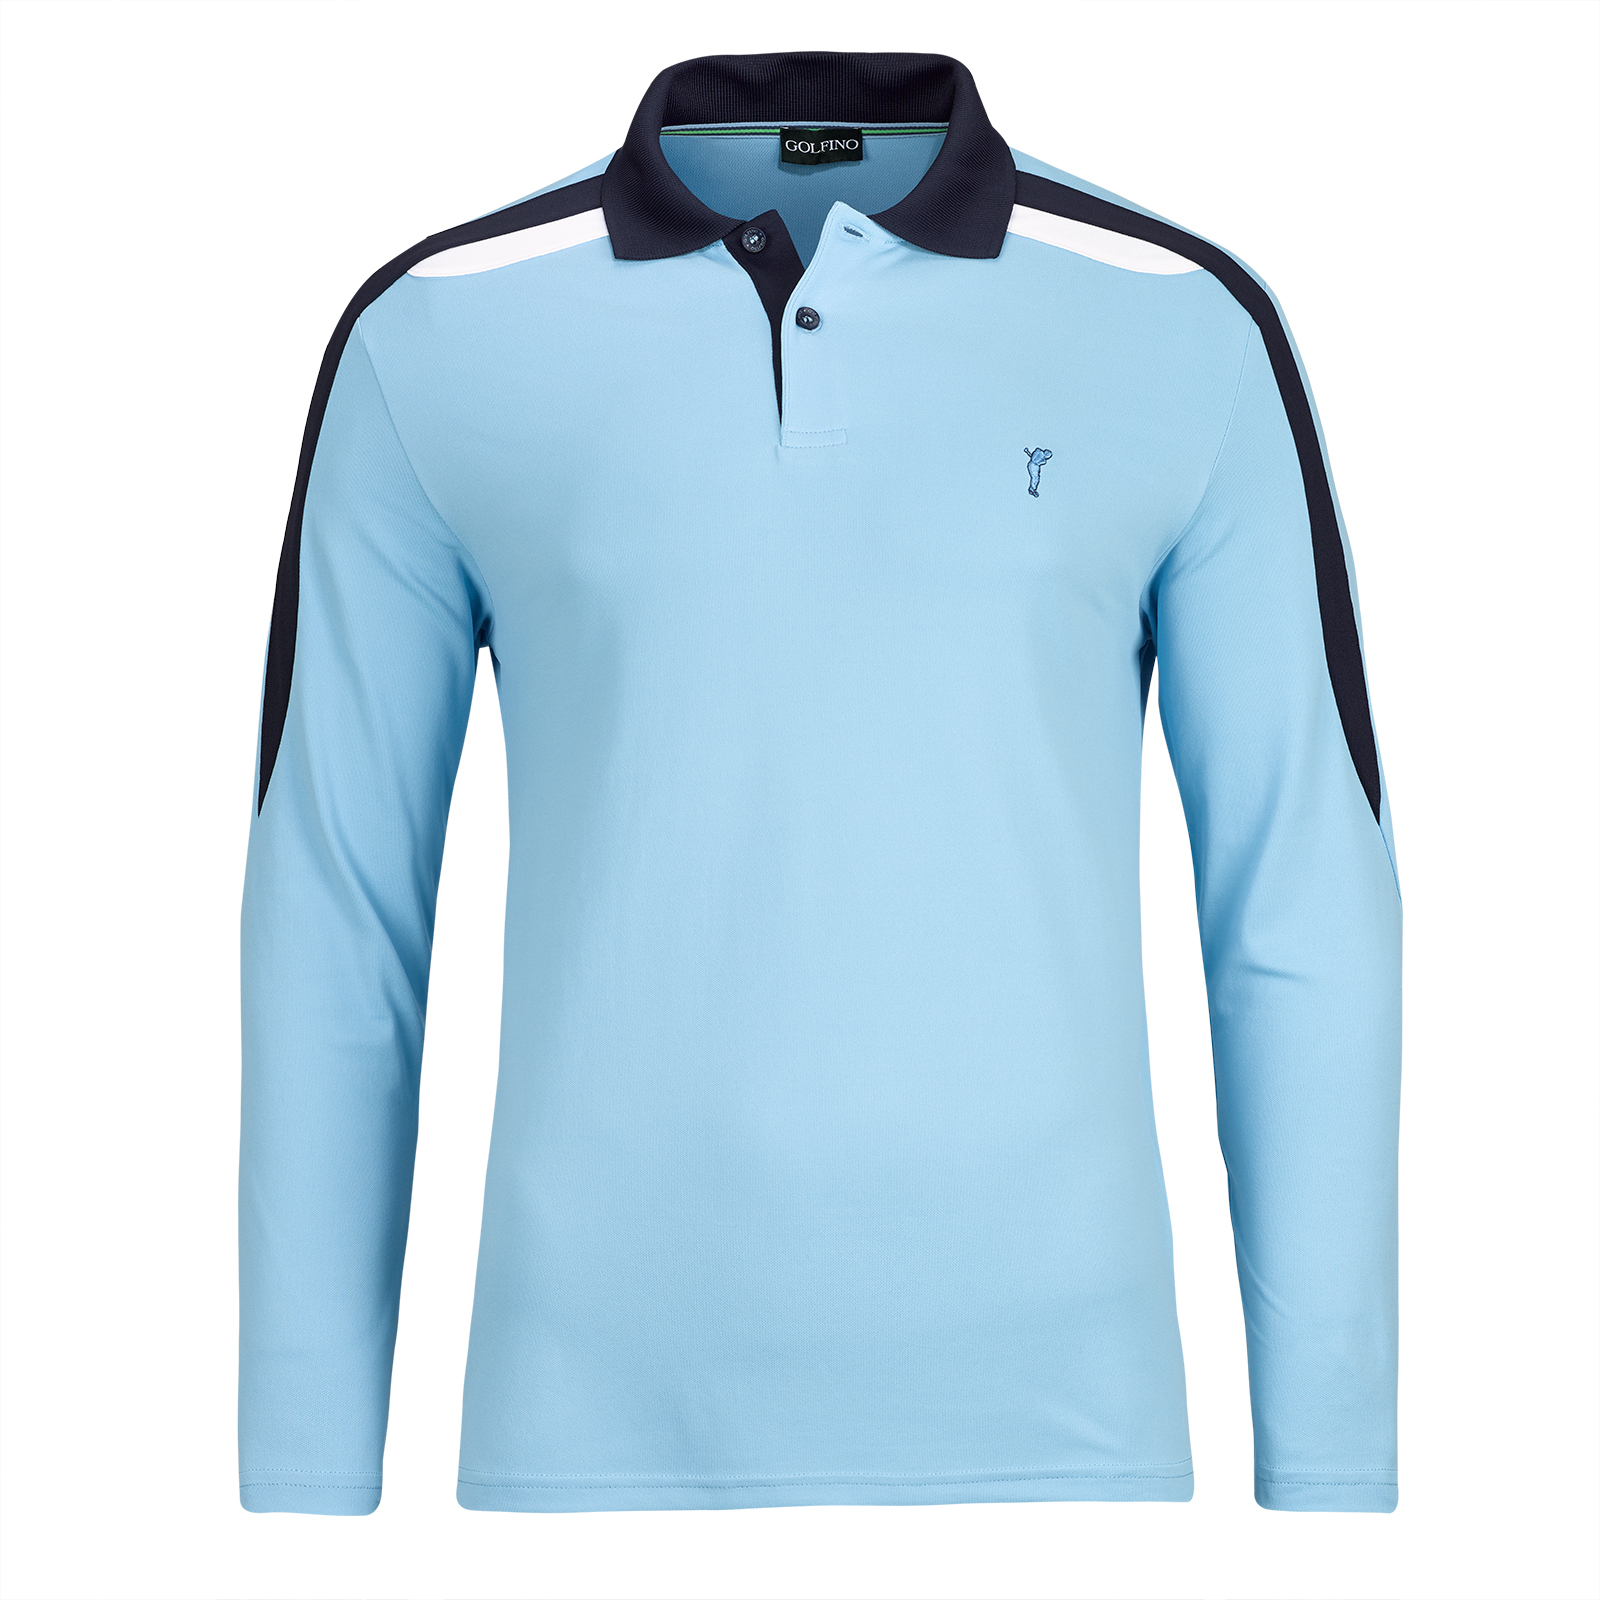 Herren Langarm Performance Golfpolo mit Quick Dry Funktion